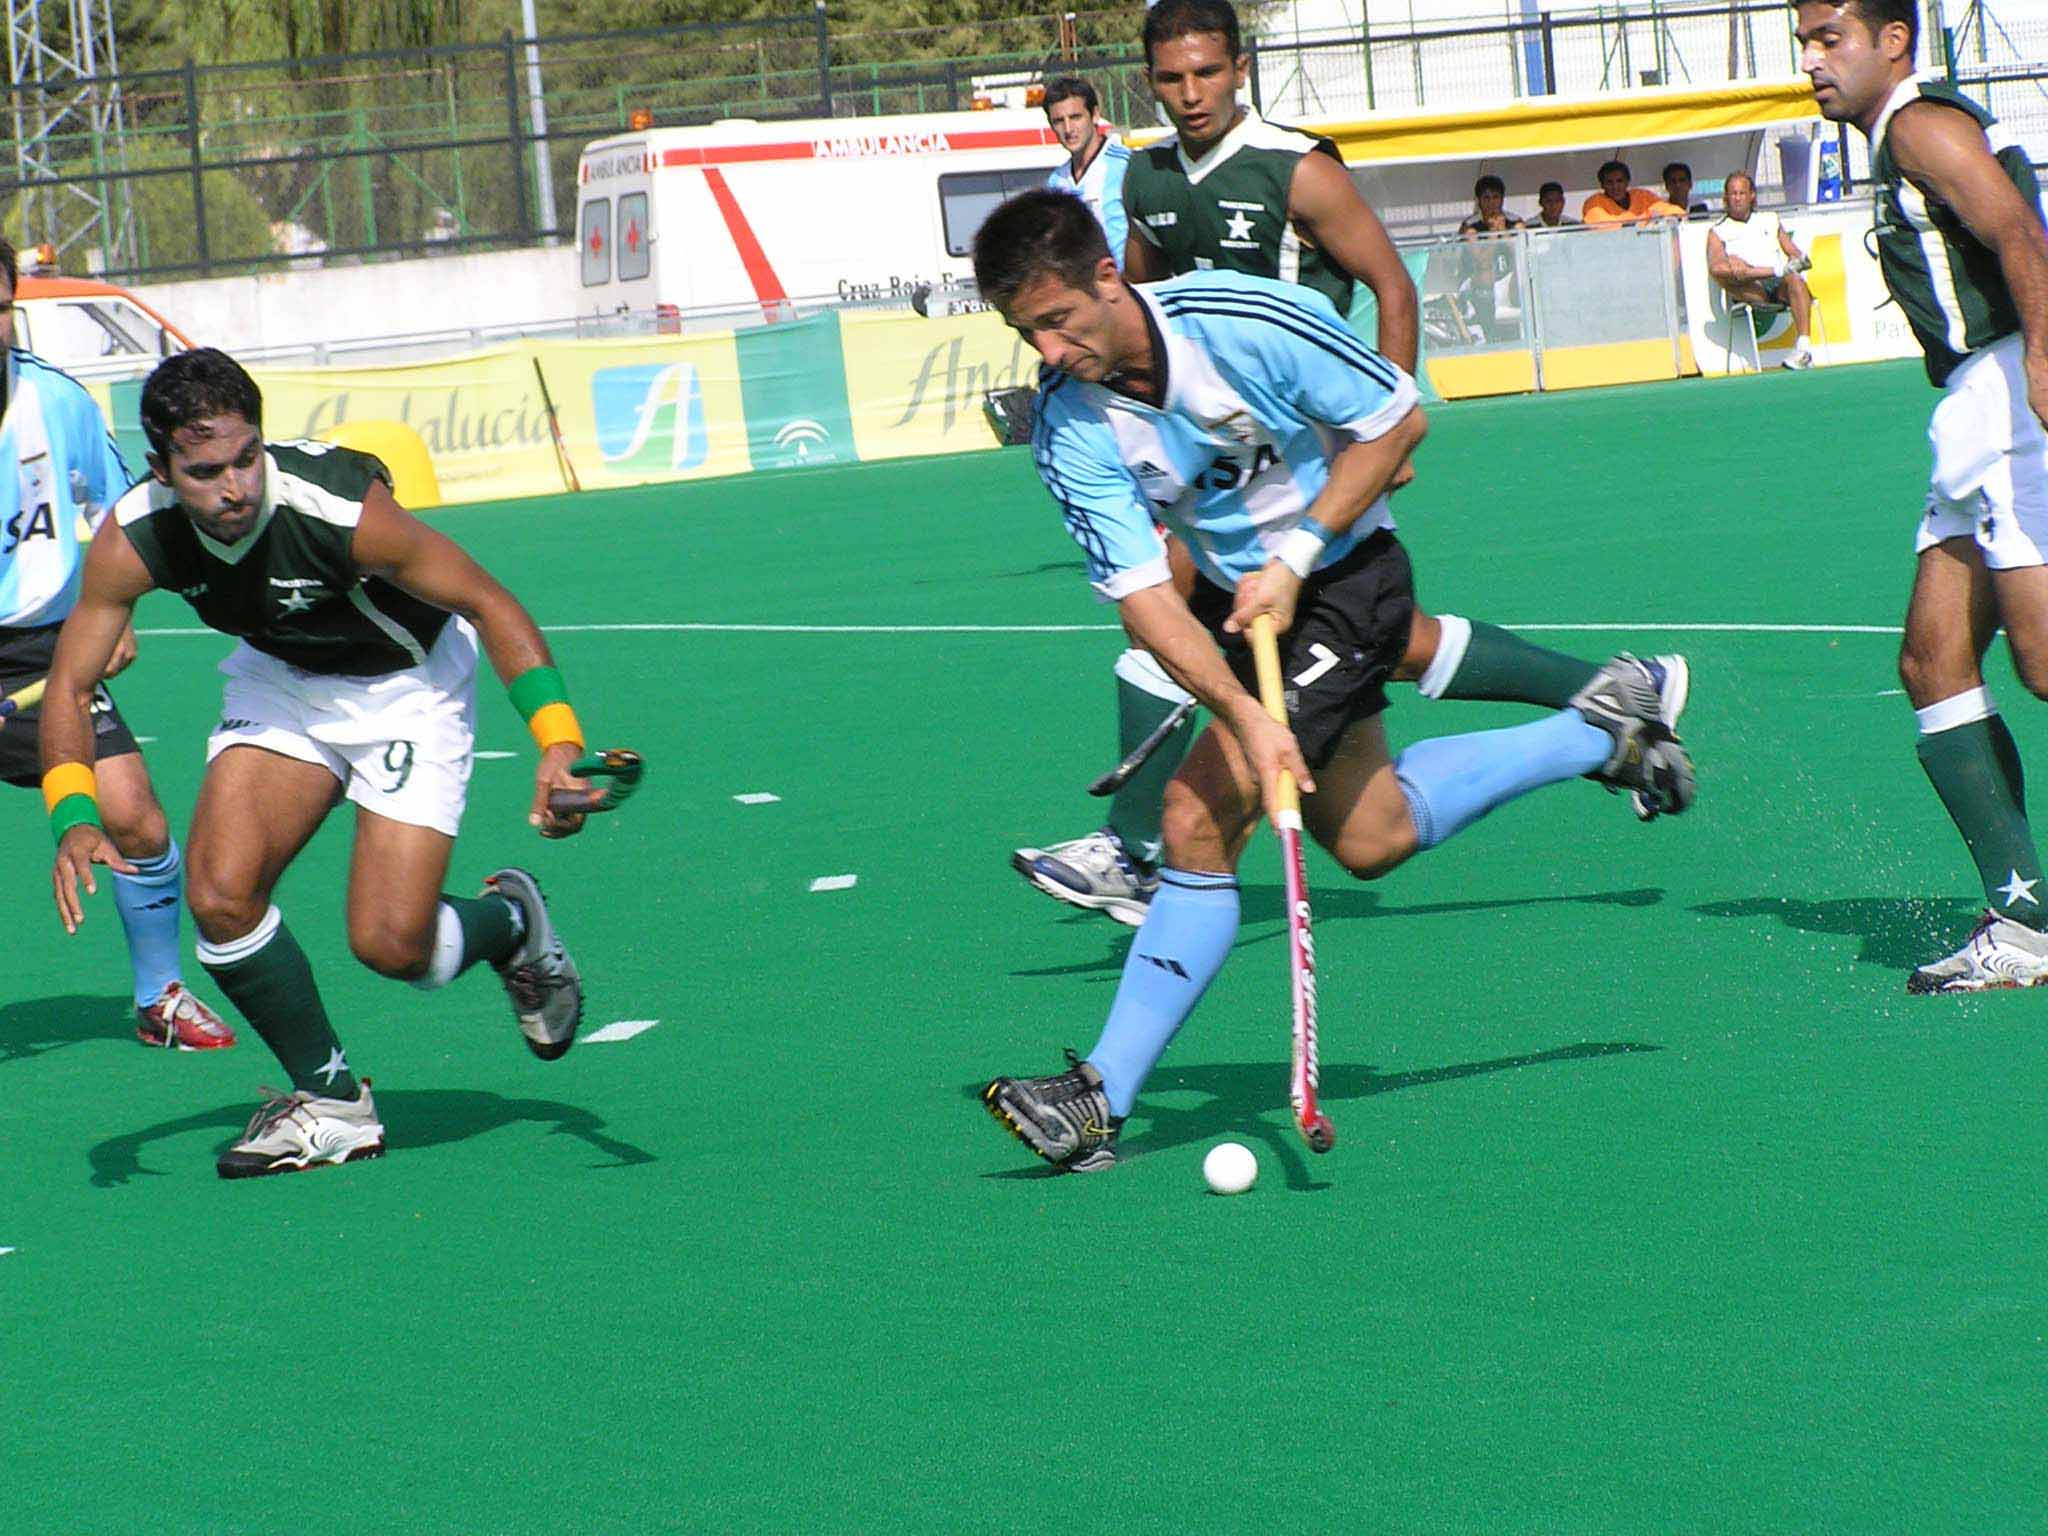 HOCKEY ARGENTINA PAKISTAN.jpg